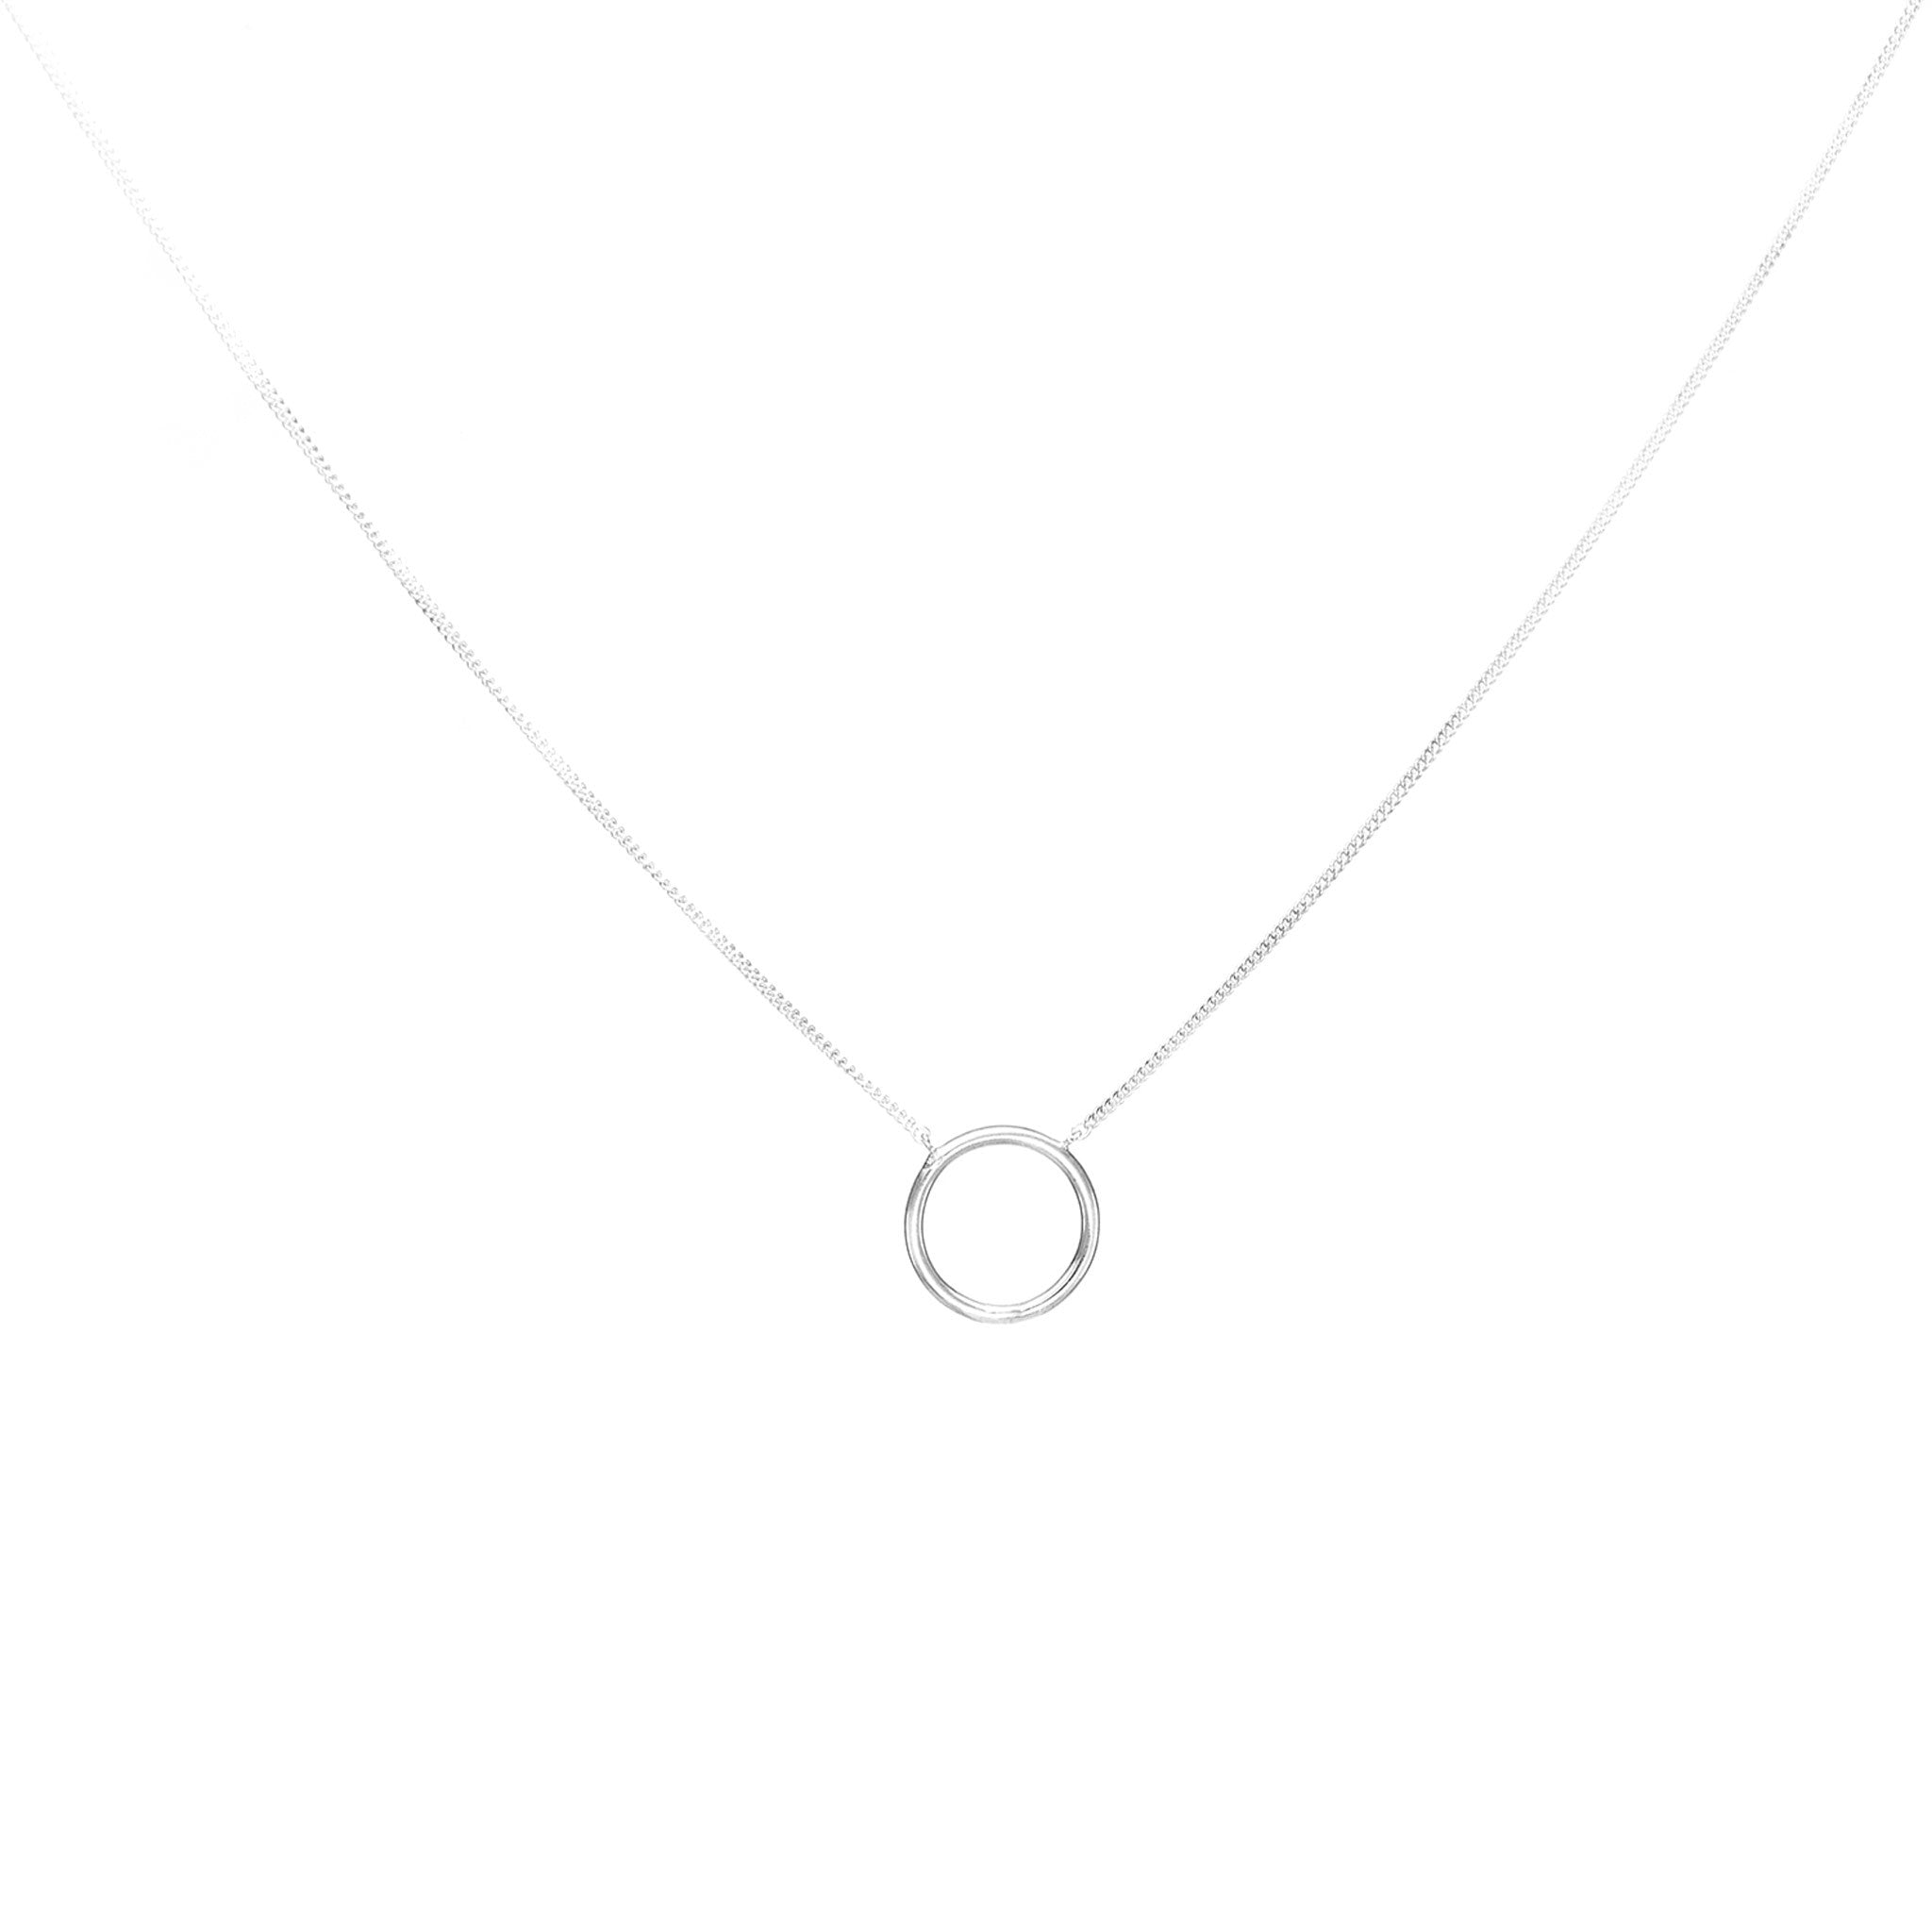 sterling silver eclipse necklace